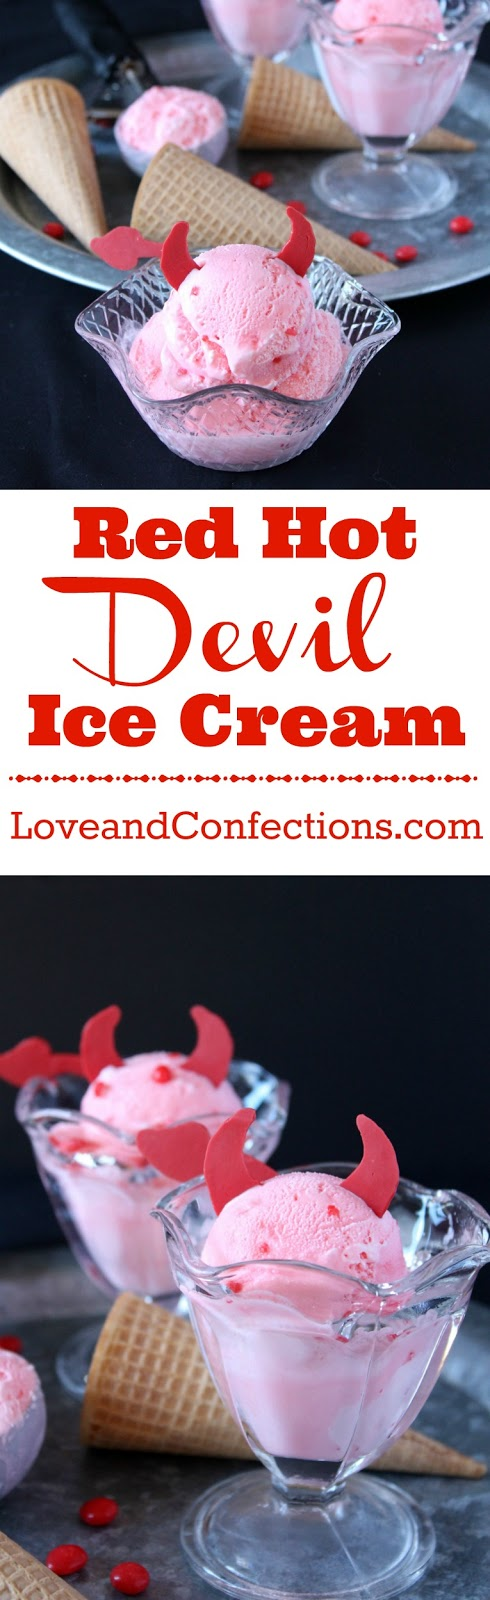 Red Hot Devil Ice Cream from LoveandConfections.com